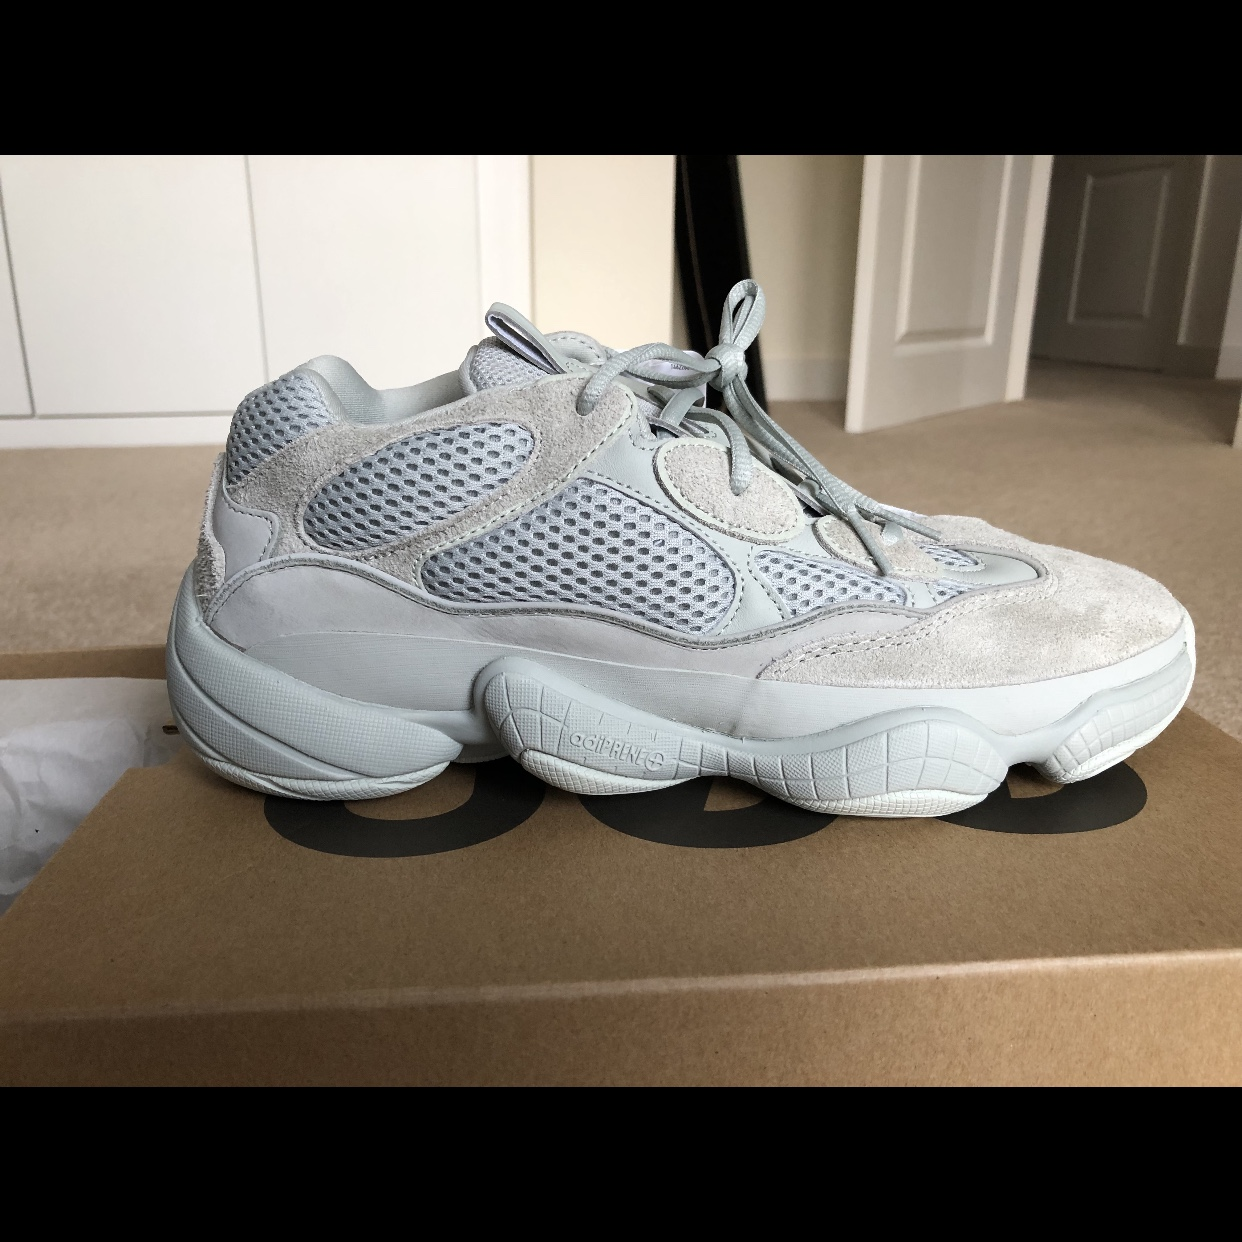 huge selection of 5cc79 d5a5a Yeezy 500s salt size 10.5 brand new in box In salt... - Depop